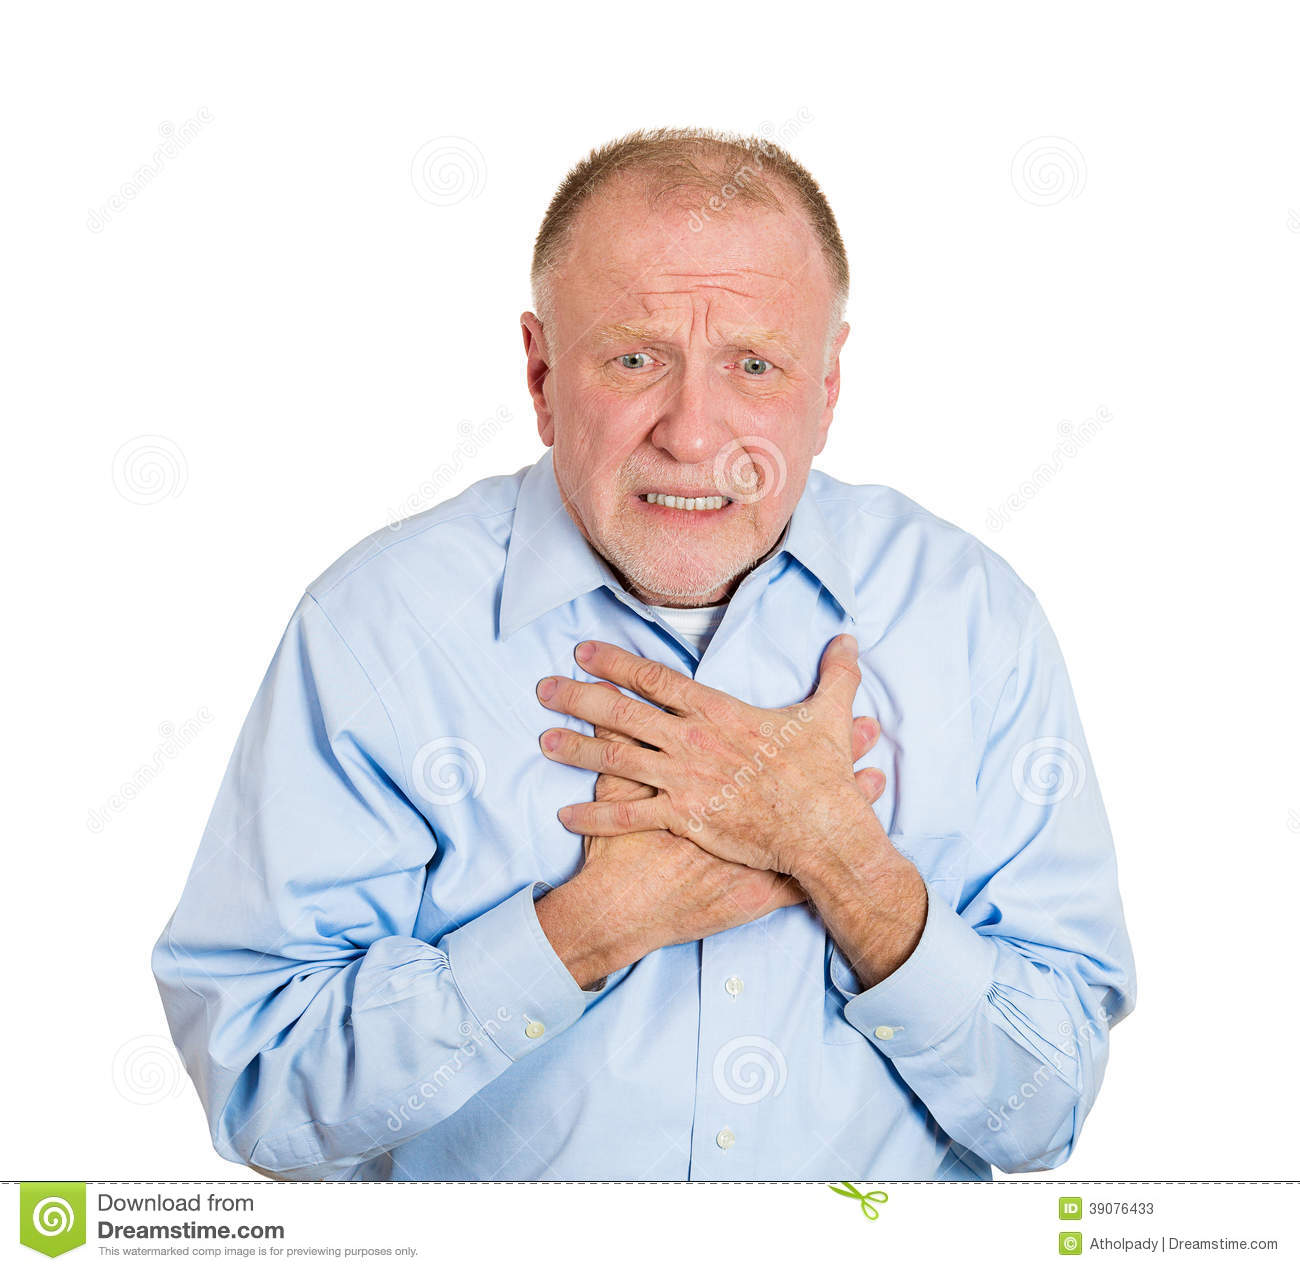 Chest Pain Stock Photo   Image  39076433